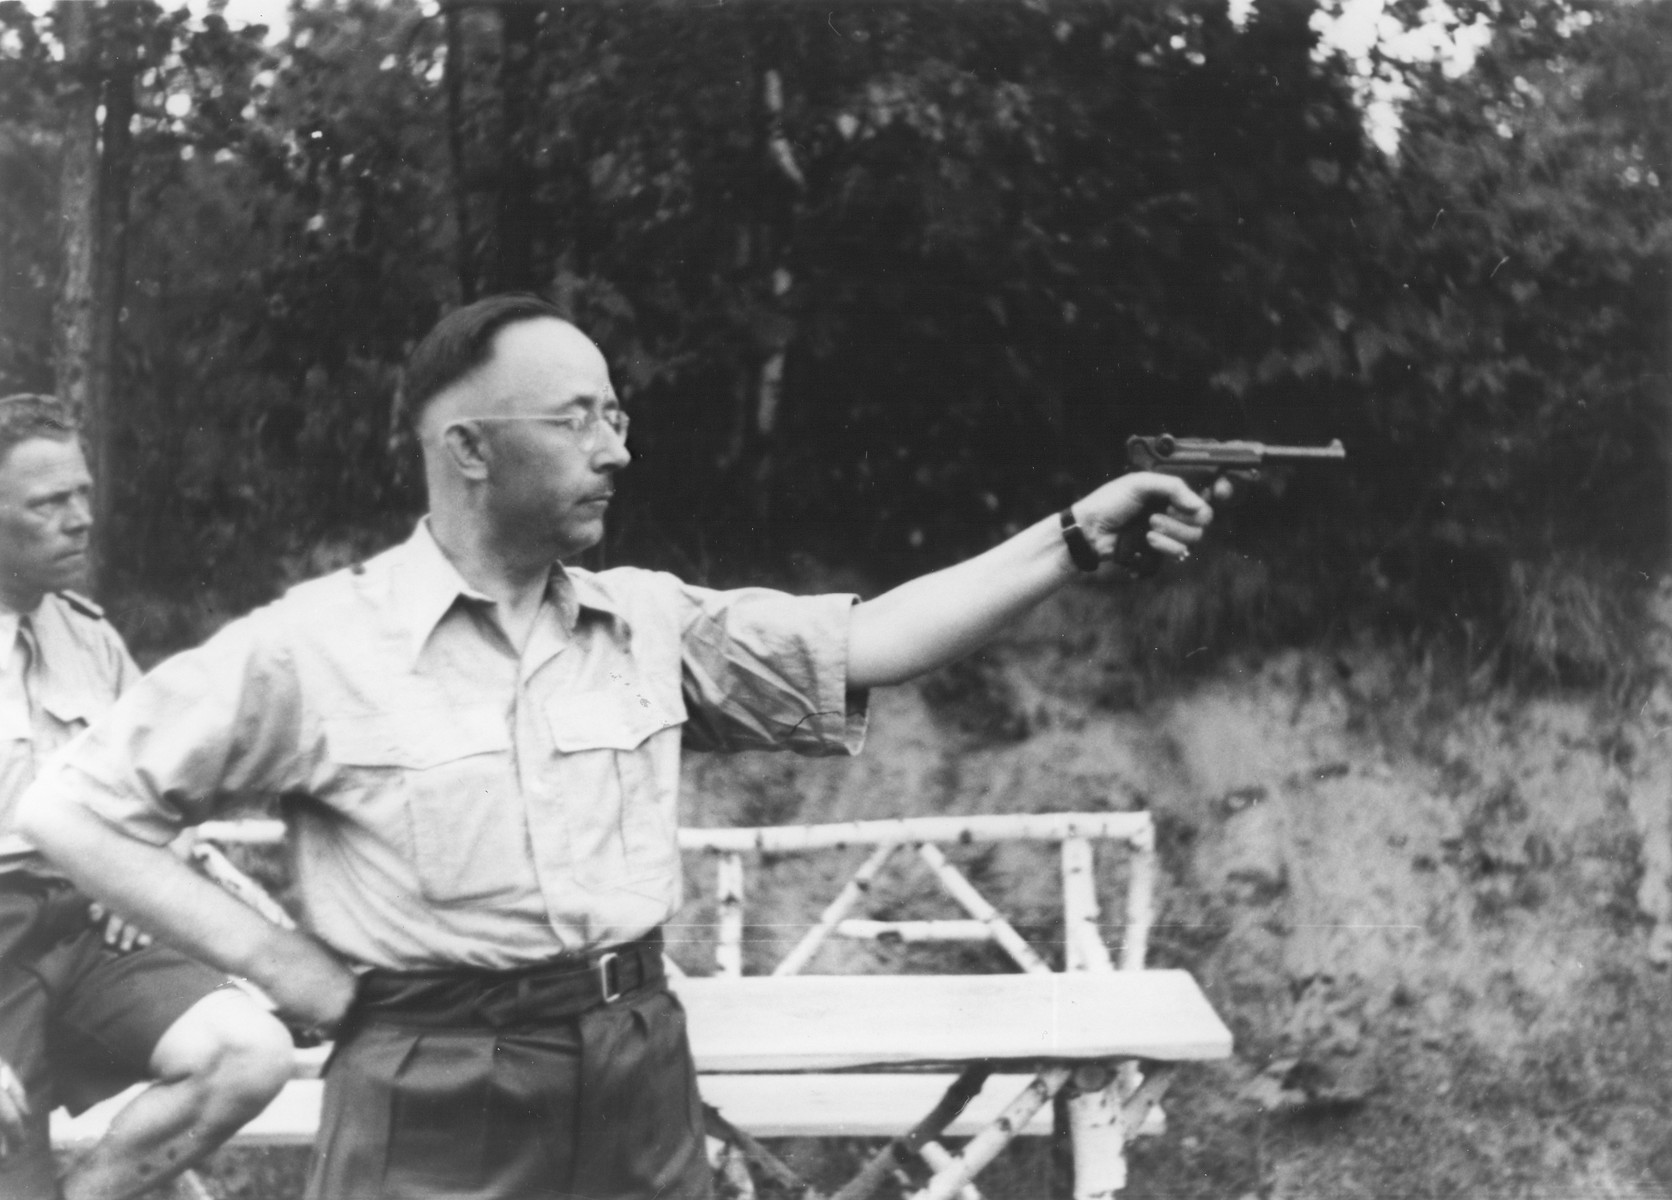 Heinrich Himmler shoots a pistol while Kiermaier watches in the background.